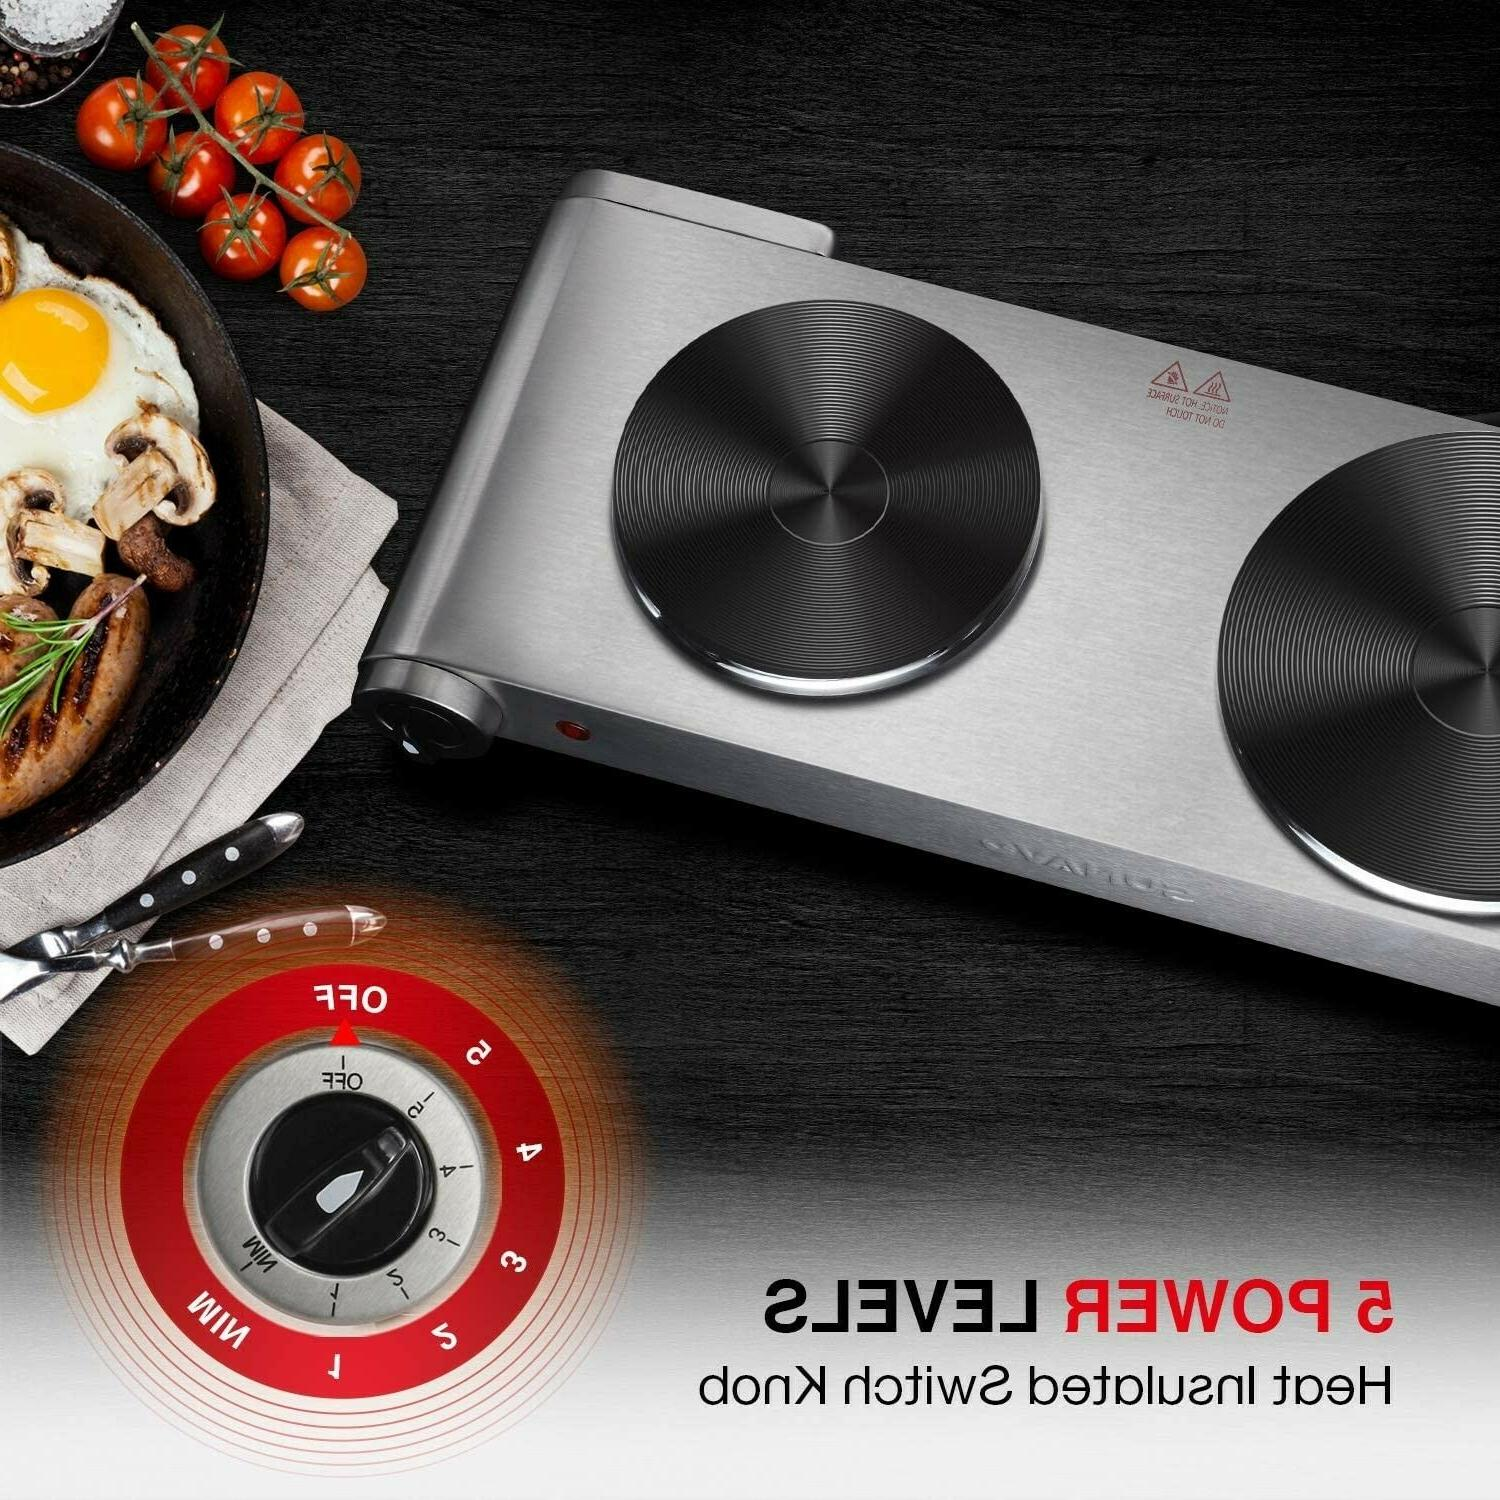 SUNAVO Hot Plates Cooking Portable Double Burner 1800W Lev